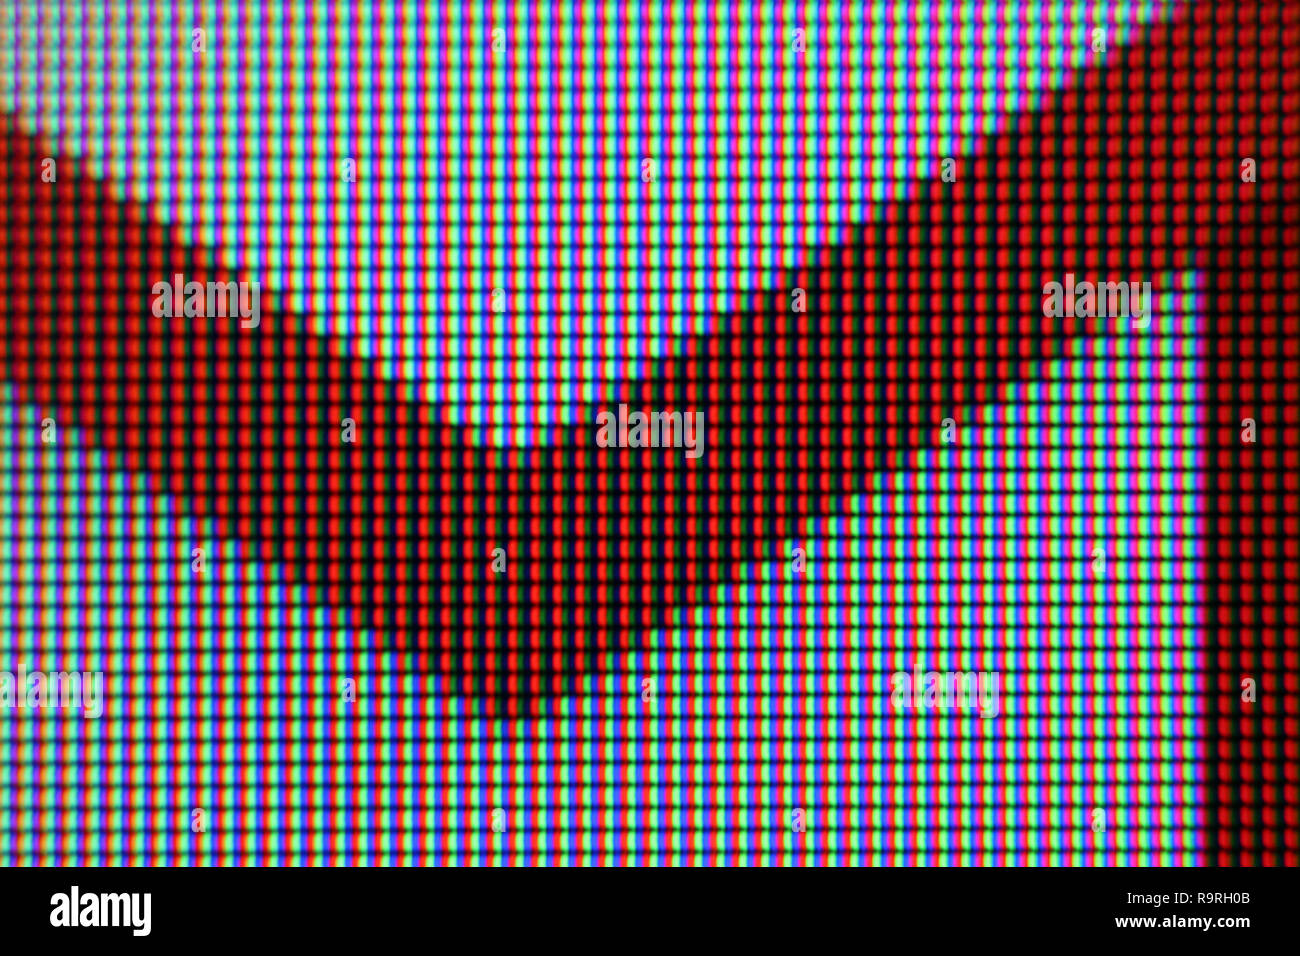 Google gmail icon on screen, close-up - Stock Image